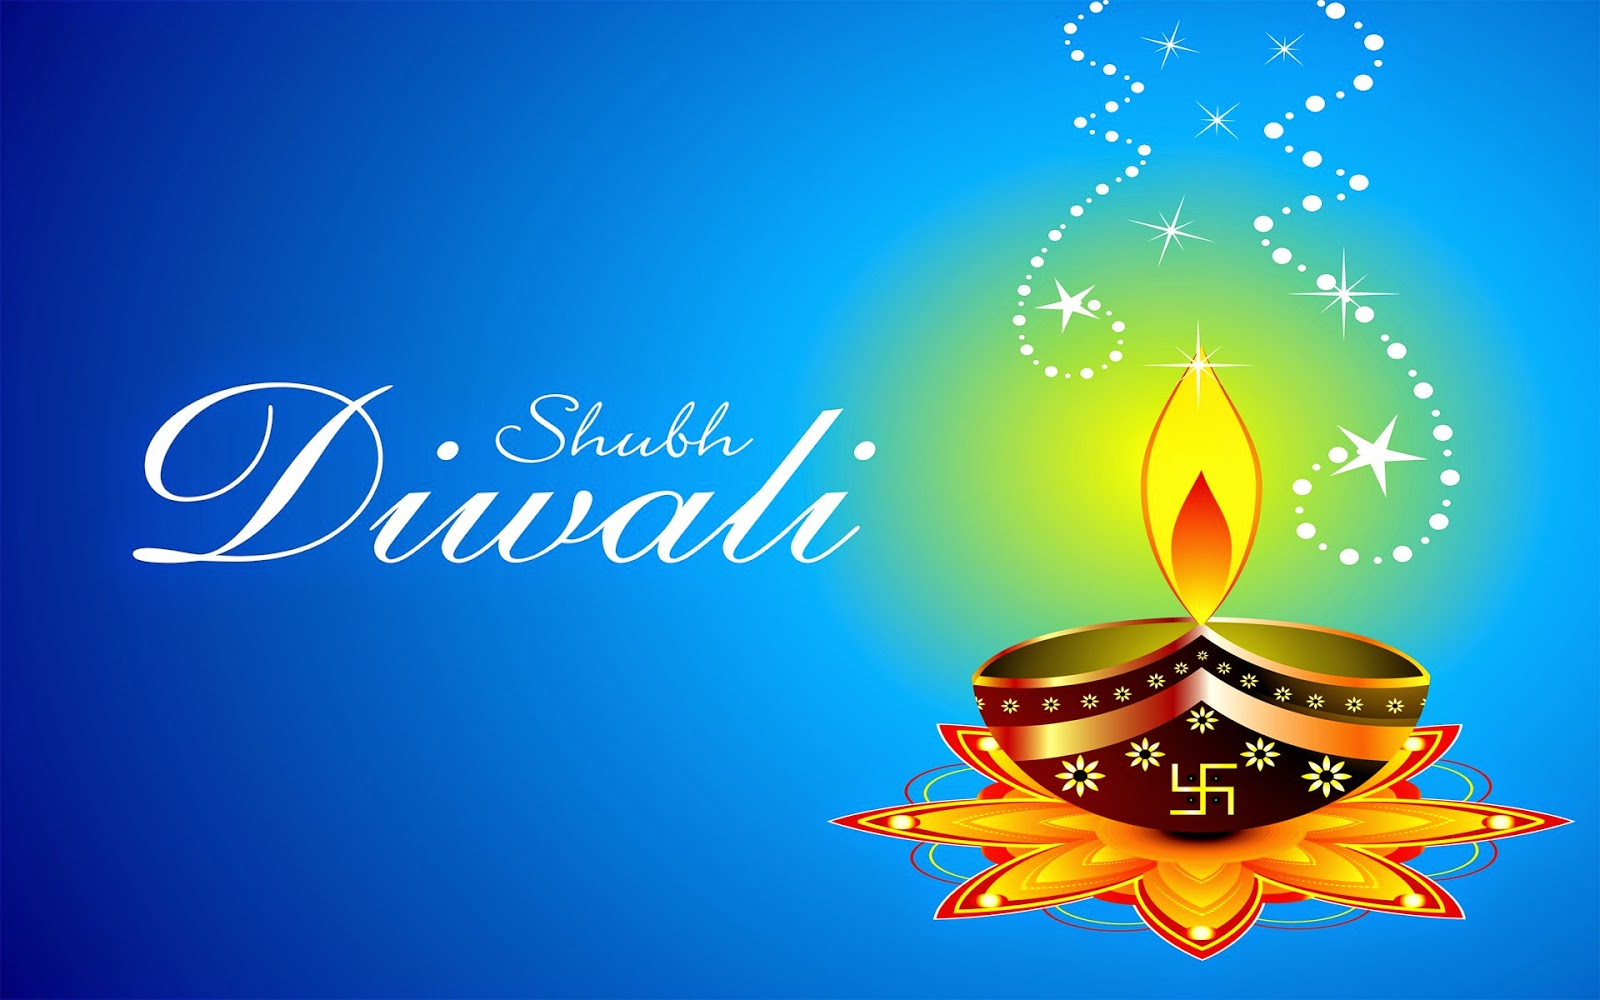 Happy Diwali with blue sky in light (Wallpaper groups)